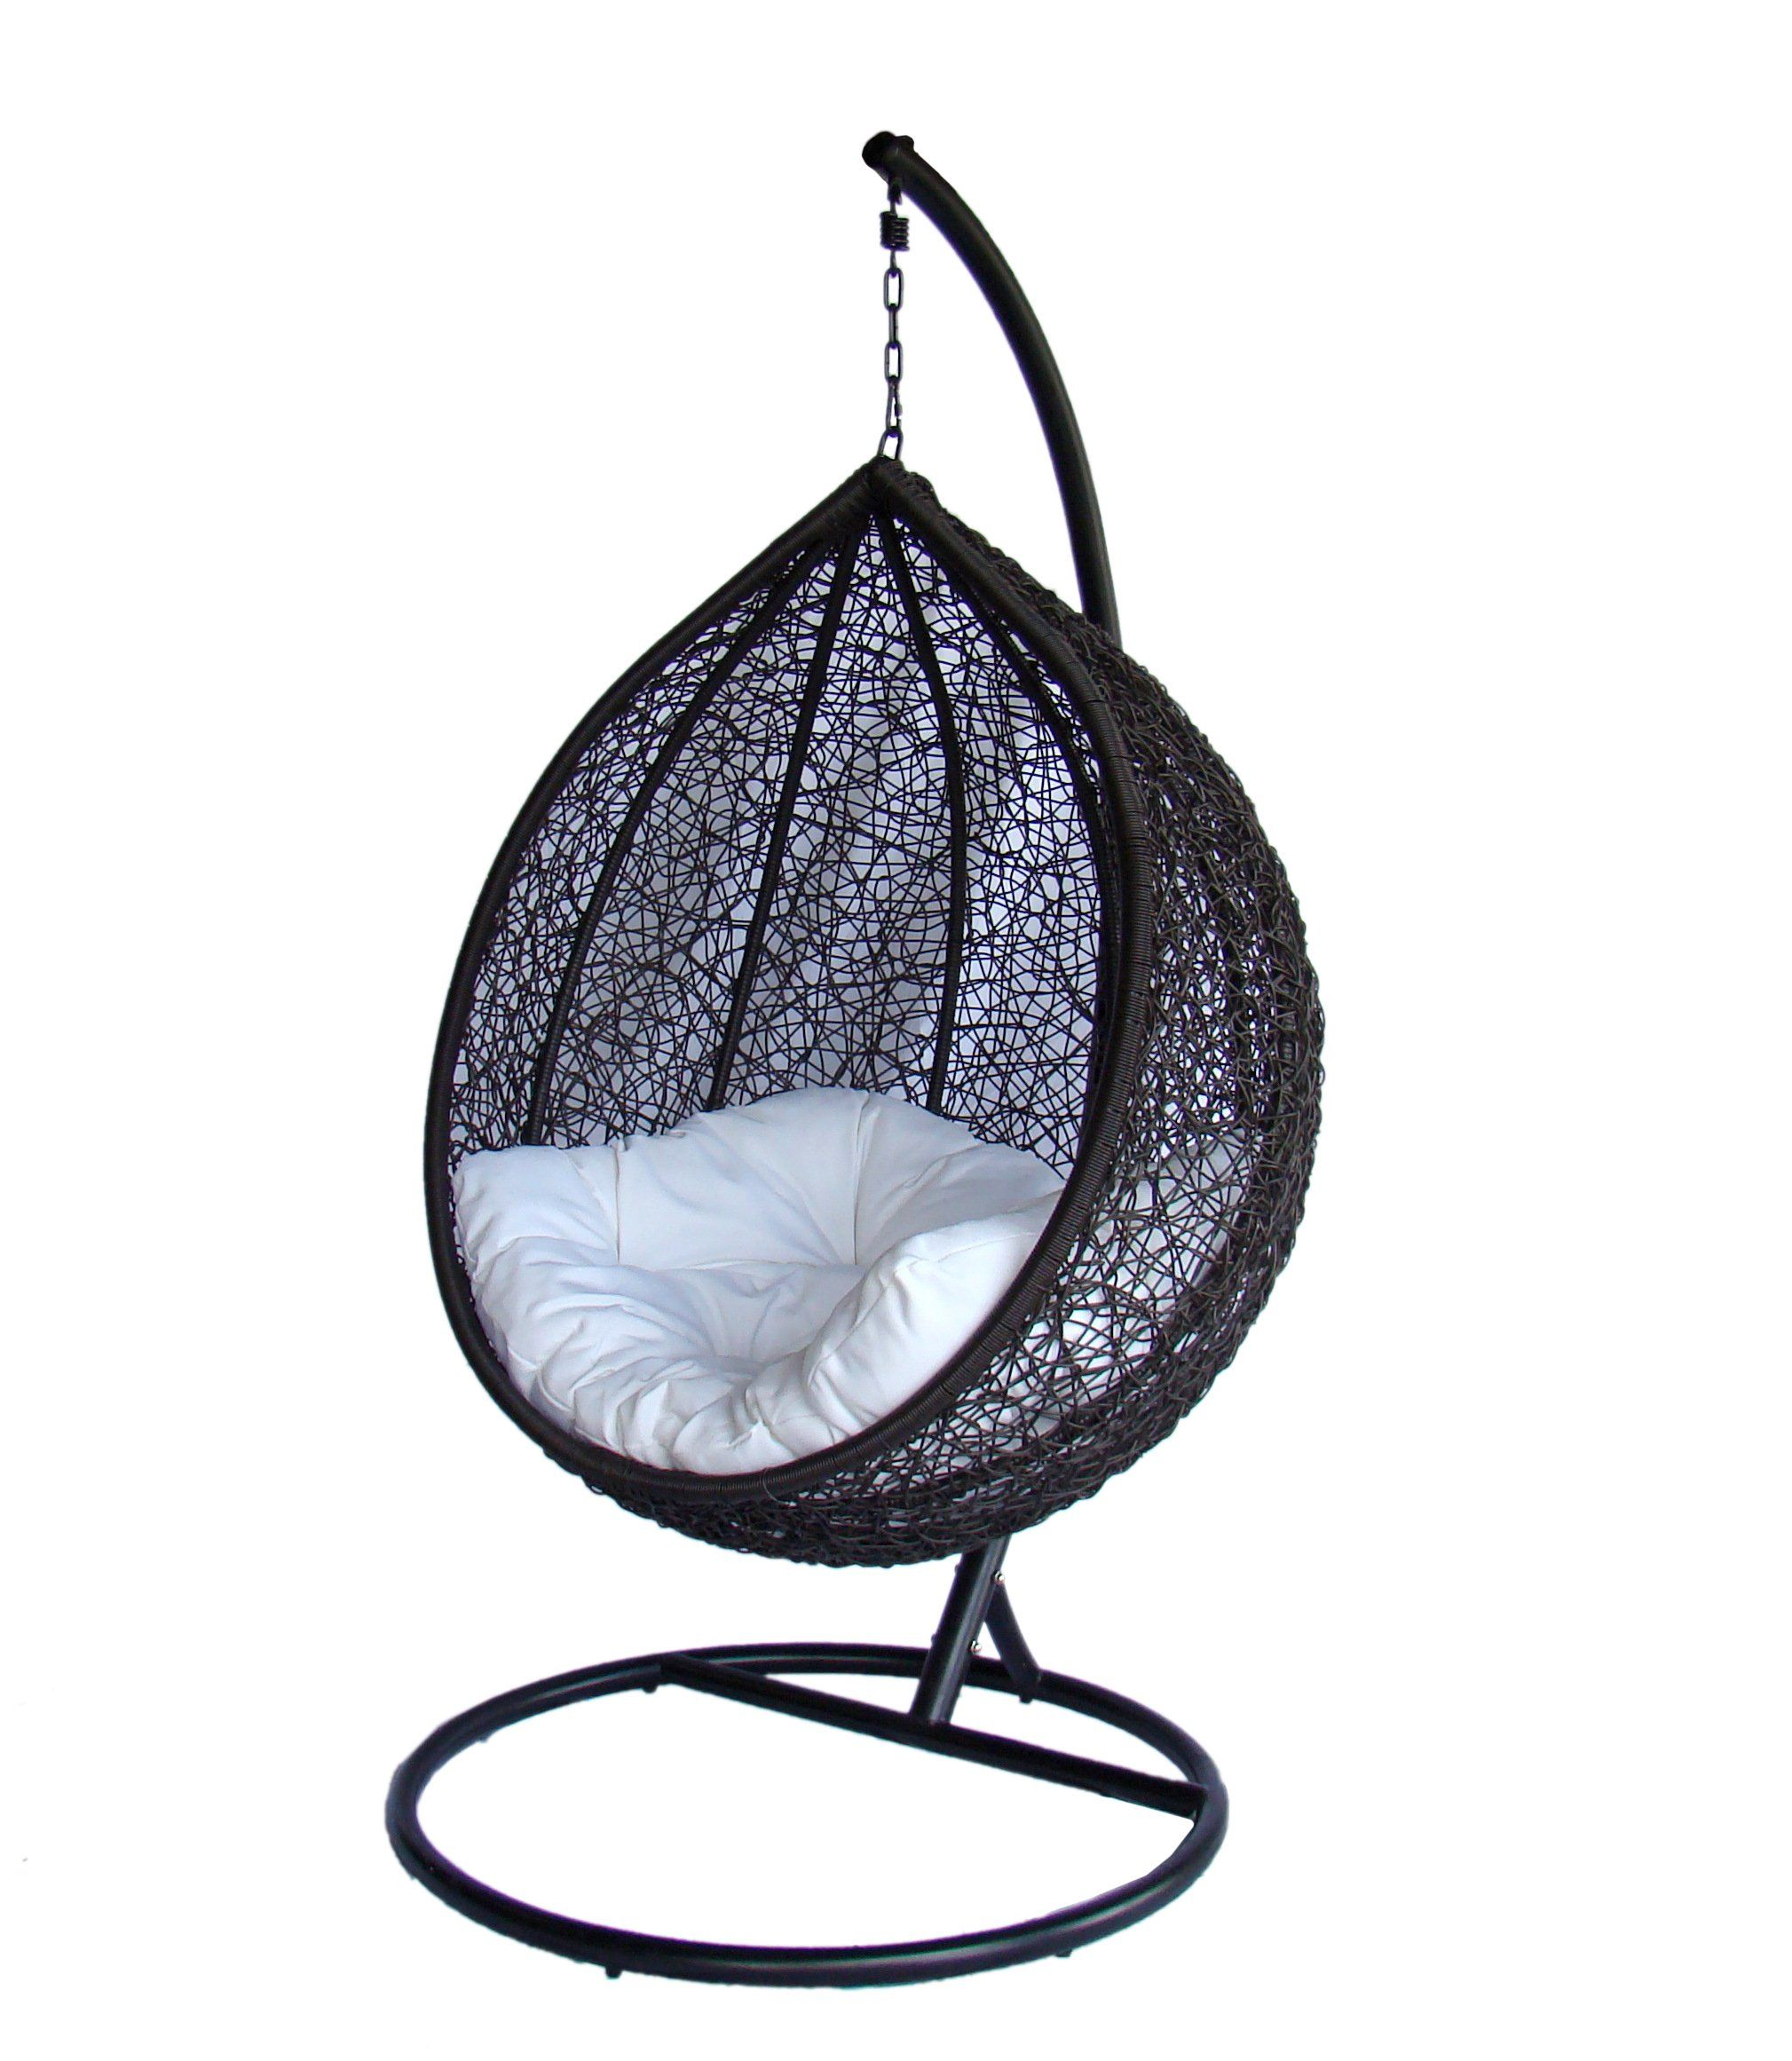 online patio acceptable porch swing chairs with office for modern additional chair quality interior